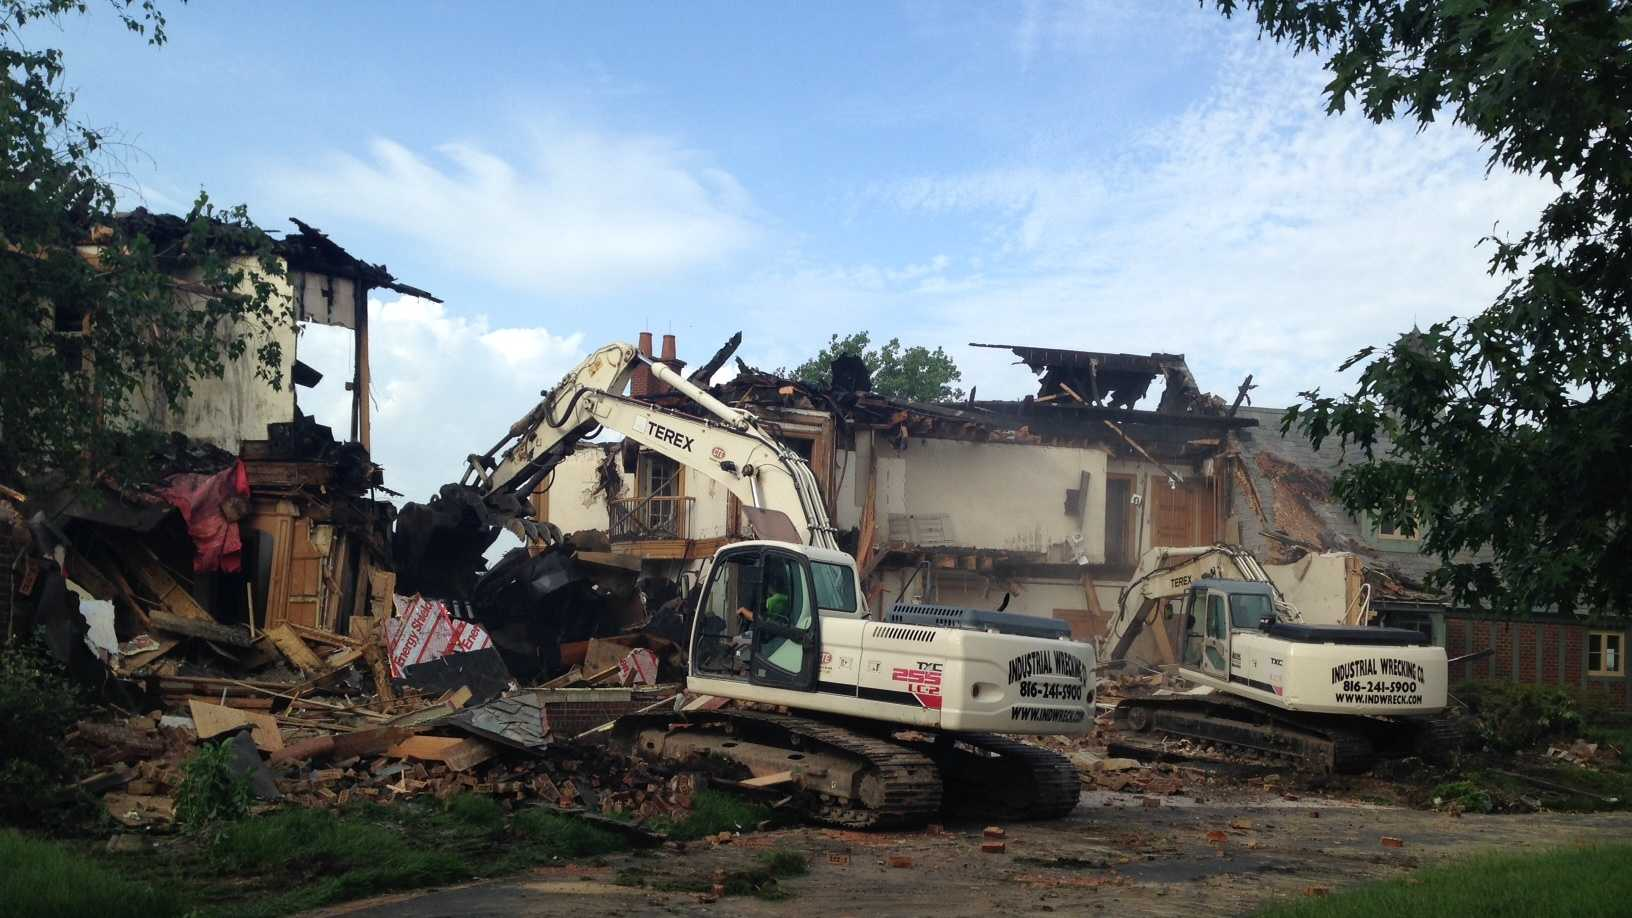 Garney Mansion demolition